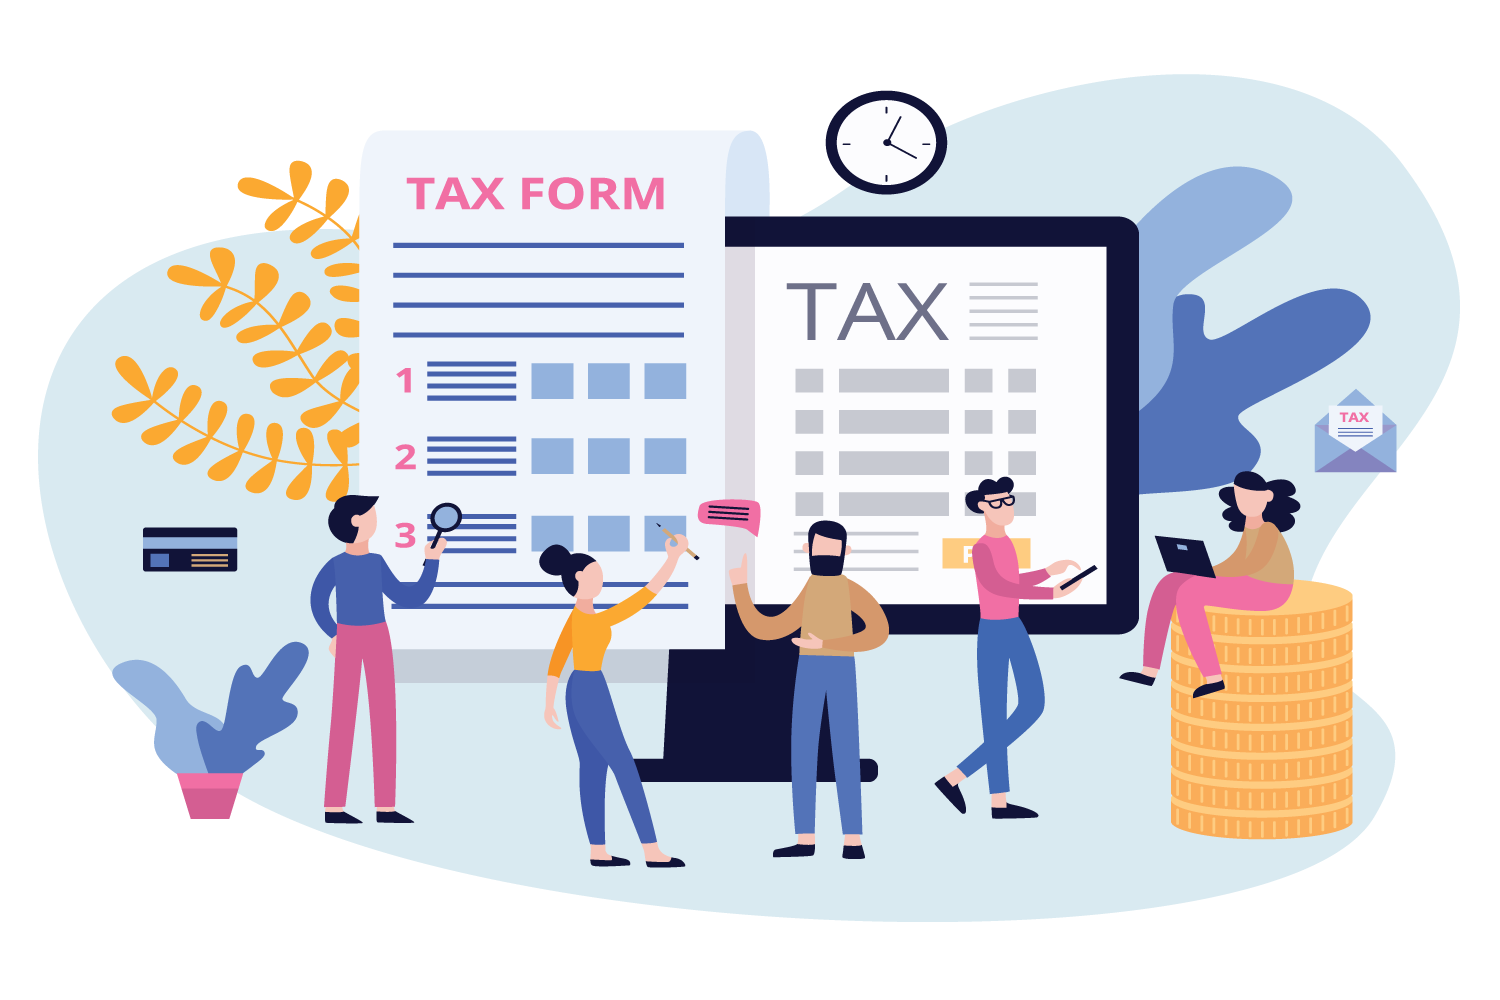 tax-banner-image